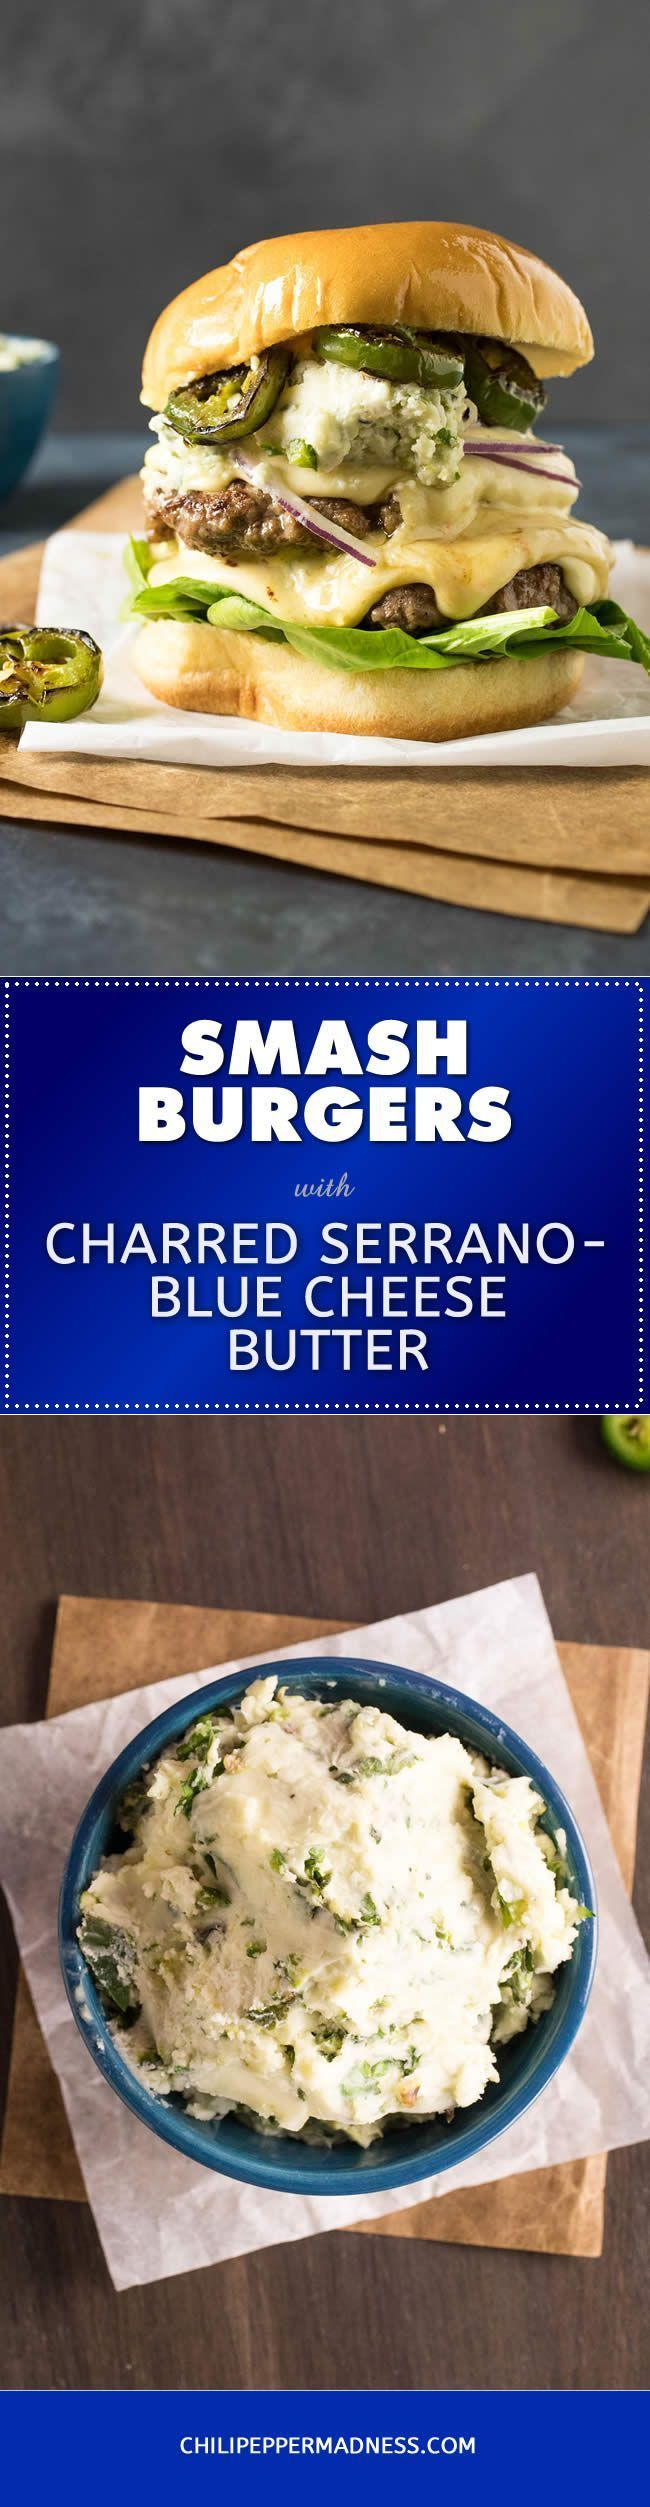 Smashburgers with Charred Serrano-Blue Cheese Butter - A recipe for perfect, decadent handmade burgers made with 80/20 ground beef, seared just right then topped with outrageous blue cheese-butter spiked with charred serrano peppers. So. Freaking. Awesome